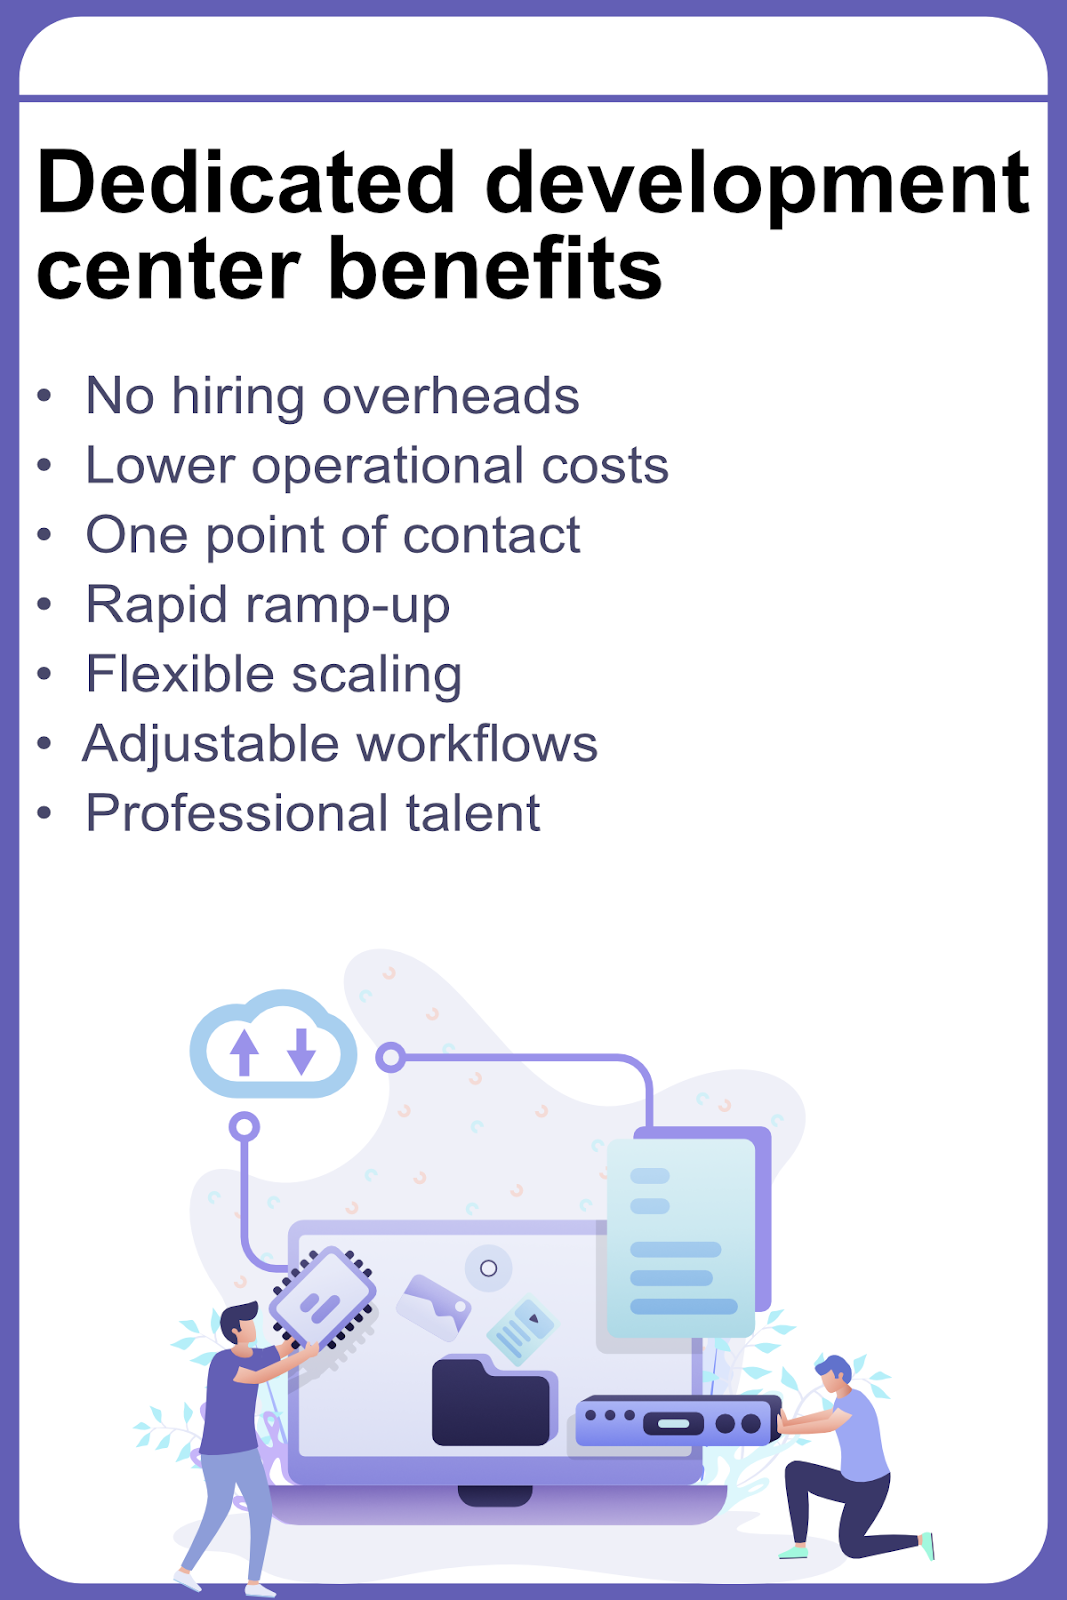 Dedicated development center benefits list